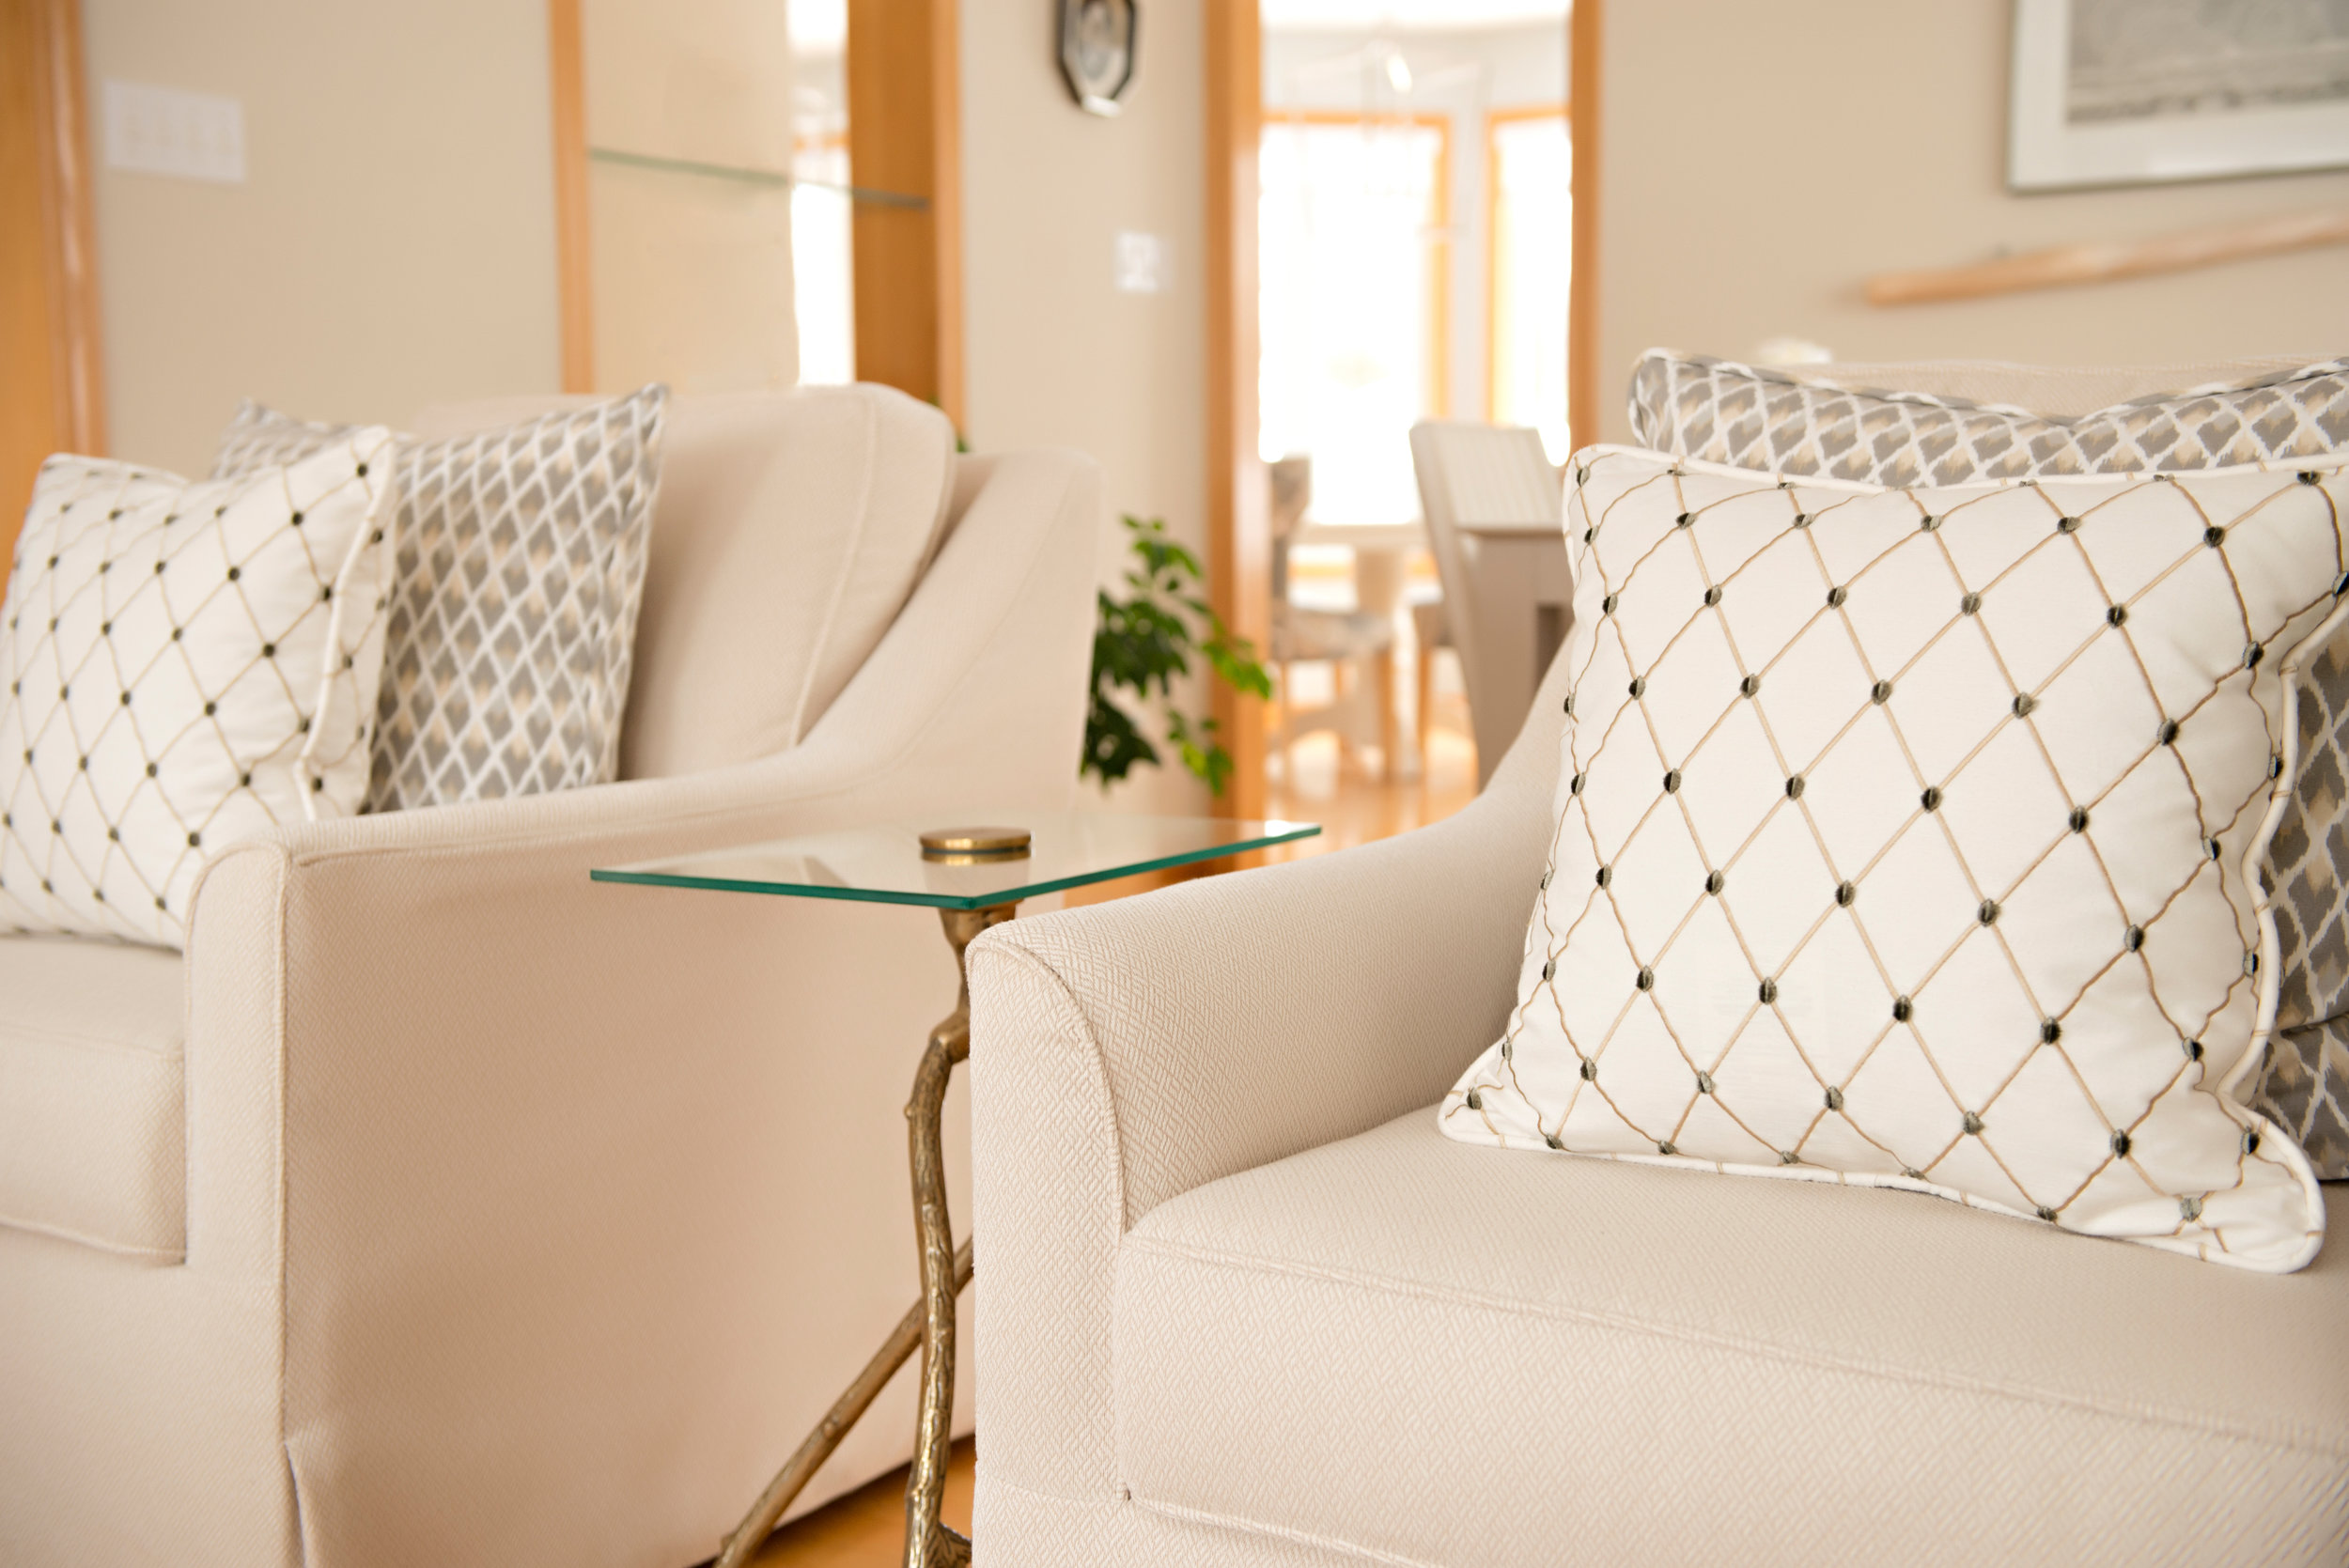 Interior-Design-Cedar-Brae-Project-Chairs-Pillows-Beige